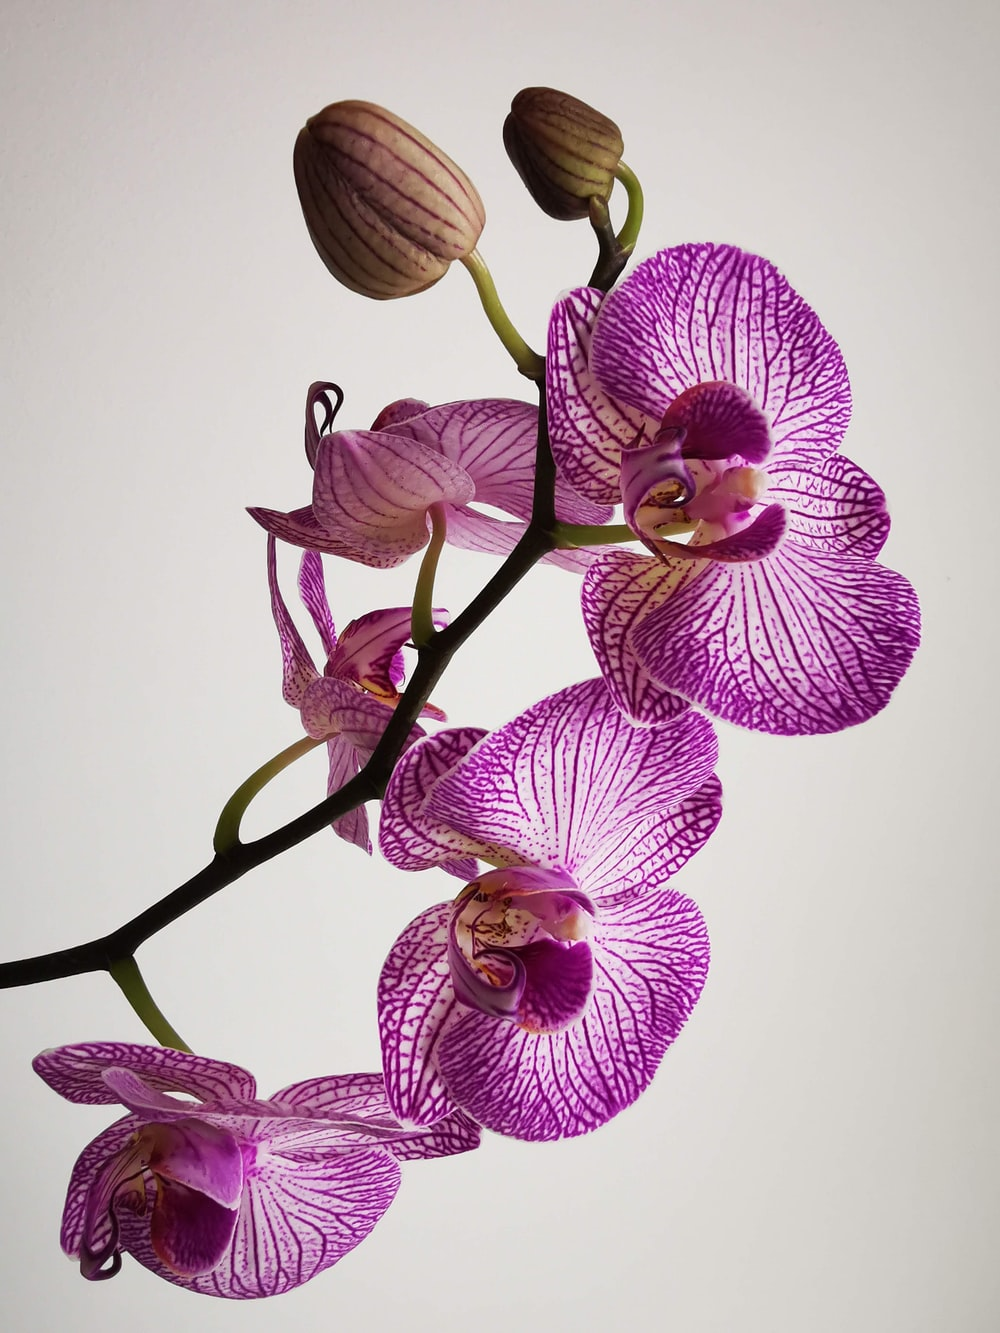 purple moth orchids in close up photography